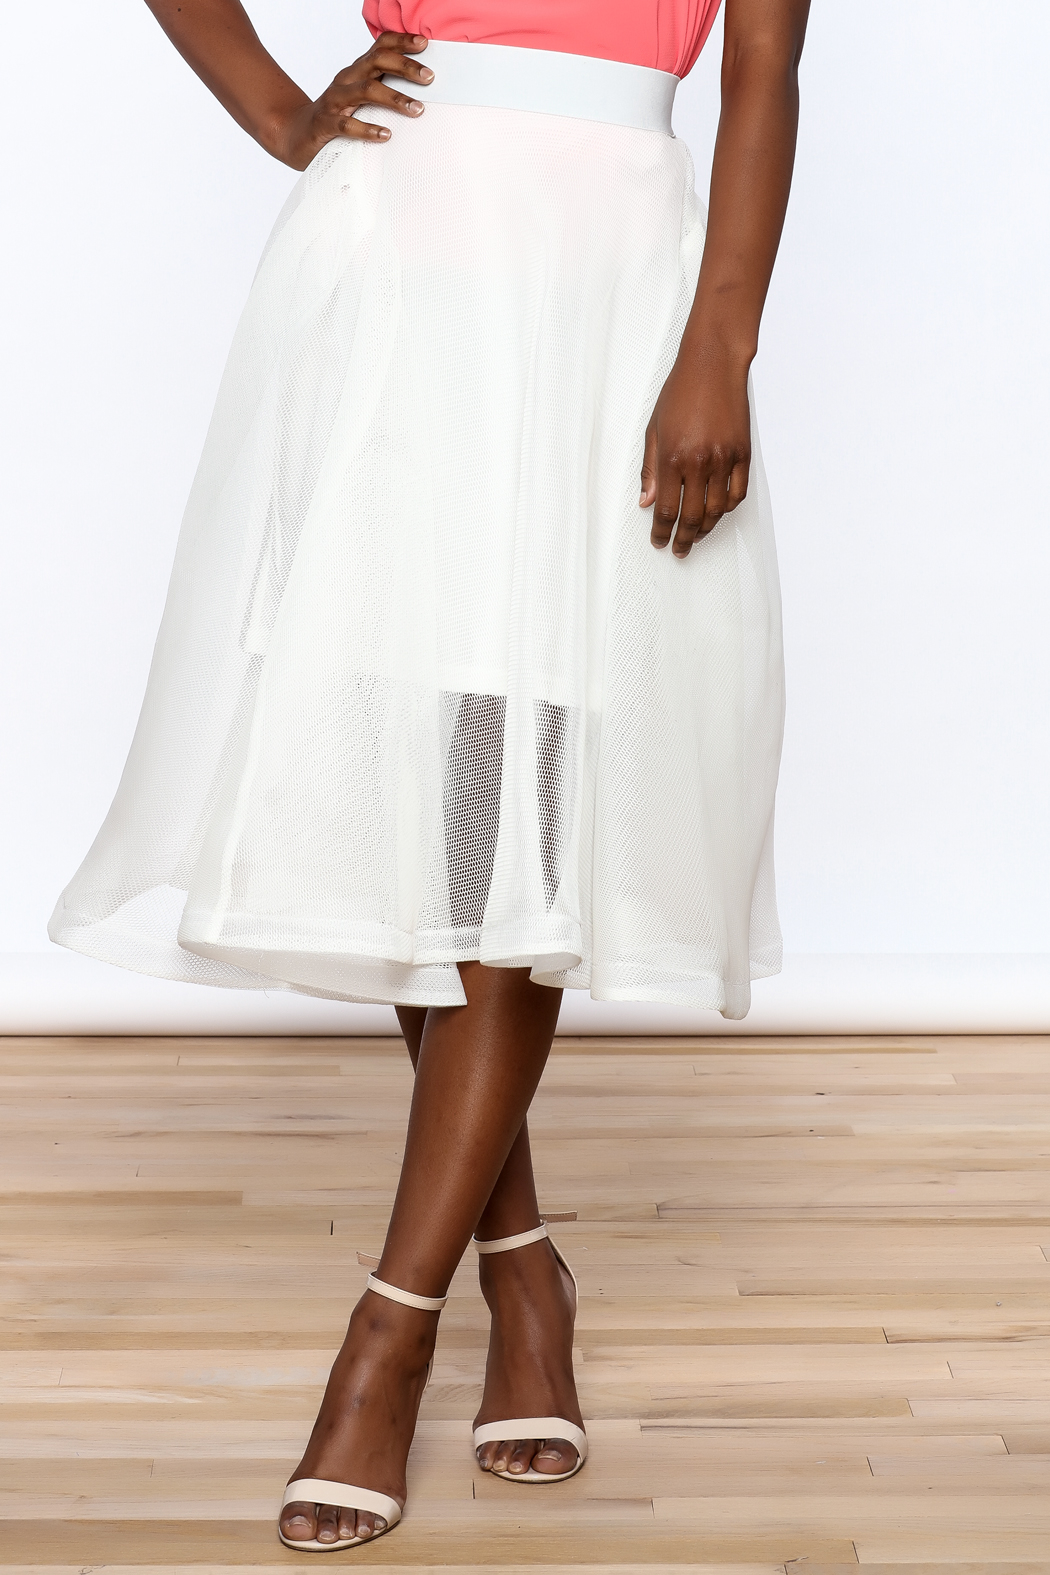 Ina White Mesh Skirt - Main Image